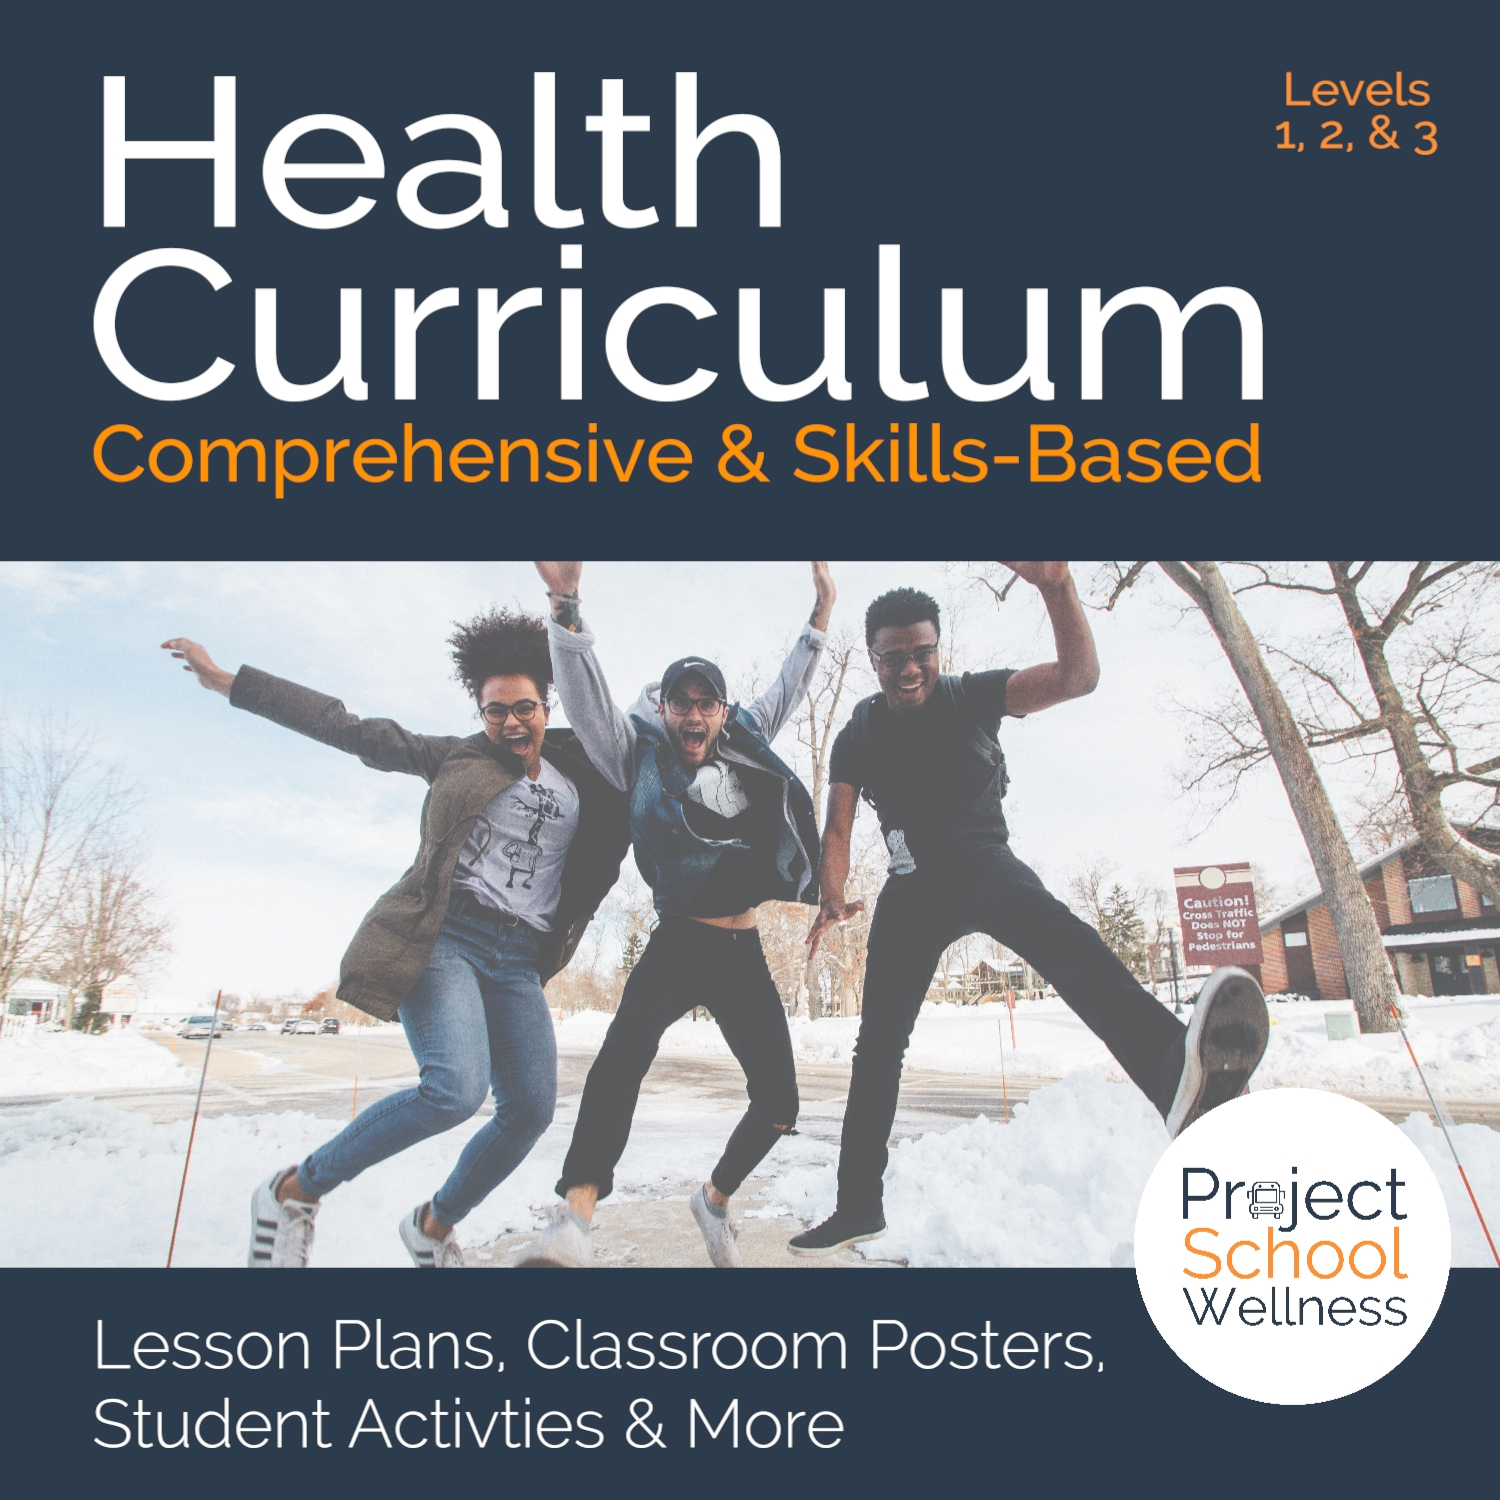 PSW Store - Comprehensive & Skills-Based Health Curriculum